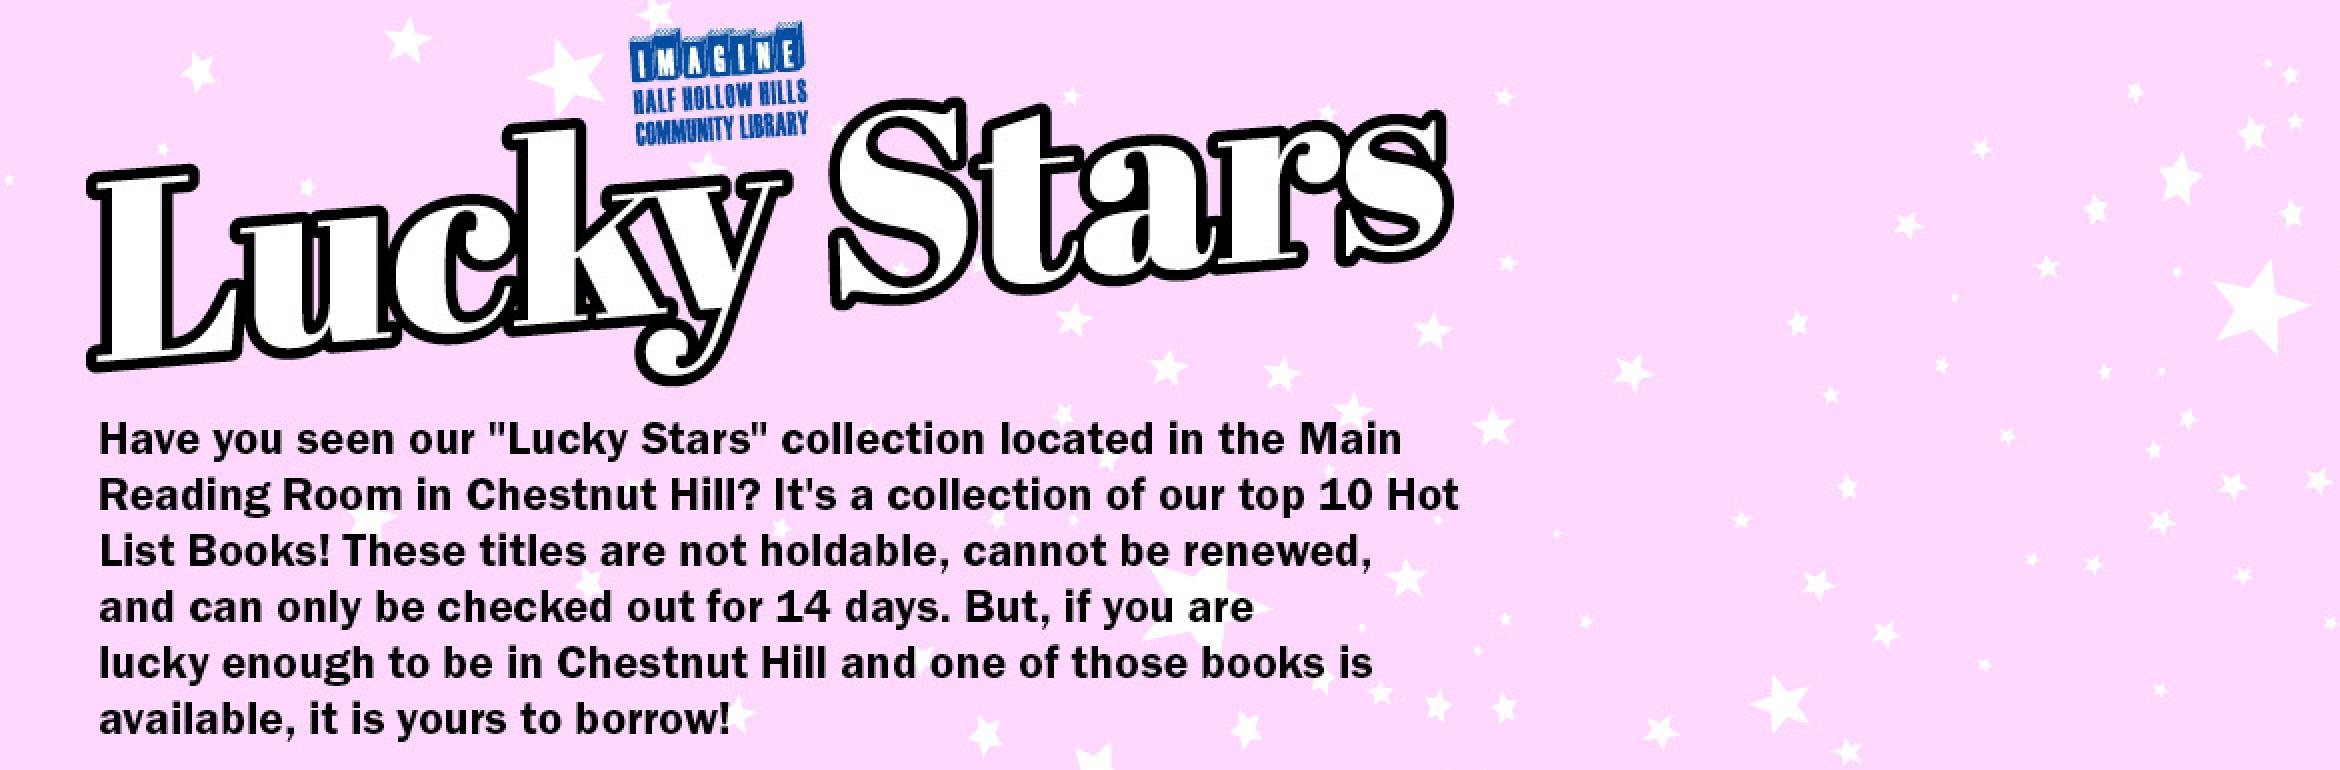 "Lucky Stars. Have you seen our ""Lucky Stars"" collection located in the Main Reading Room in Chestnut Hill? It's a collection of our top 10 Hot List Books! These titles are not holdable, cannot be renewed, and can only be checked out for 14 days. But, if you are lucky enough to be in Chestnut Hill and one of those books is available, it is yours to borrow!"